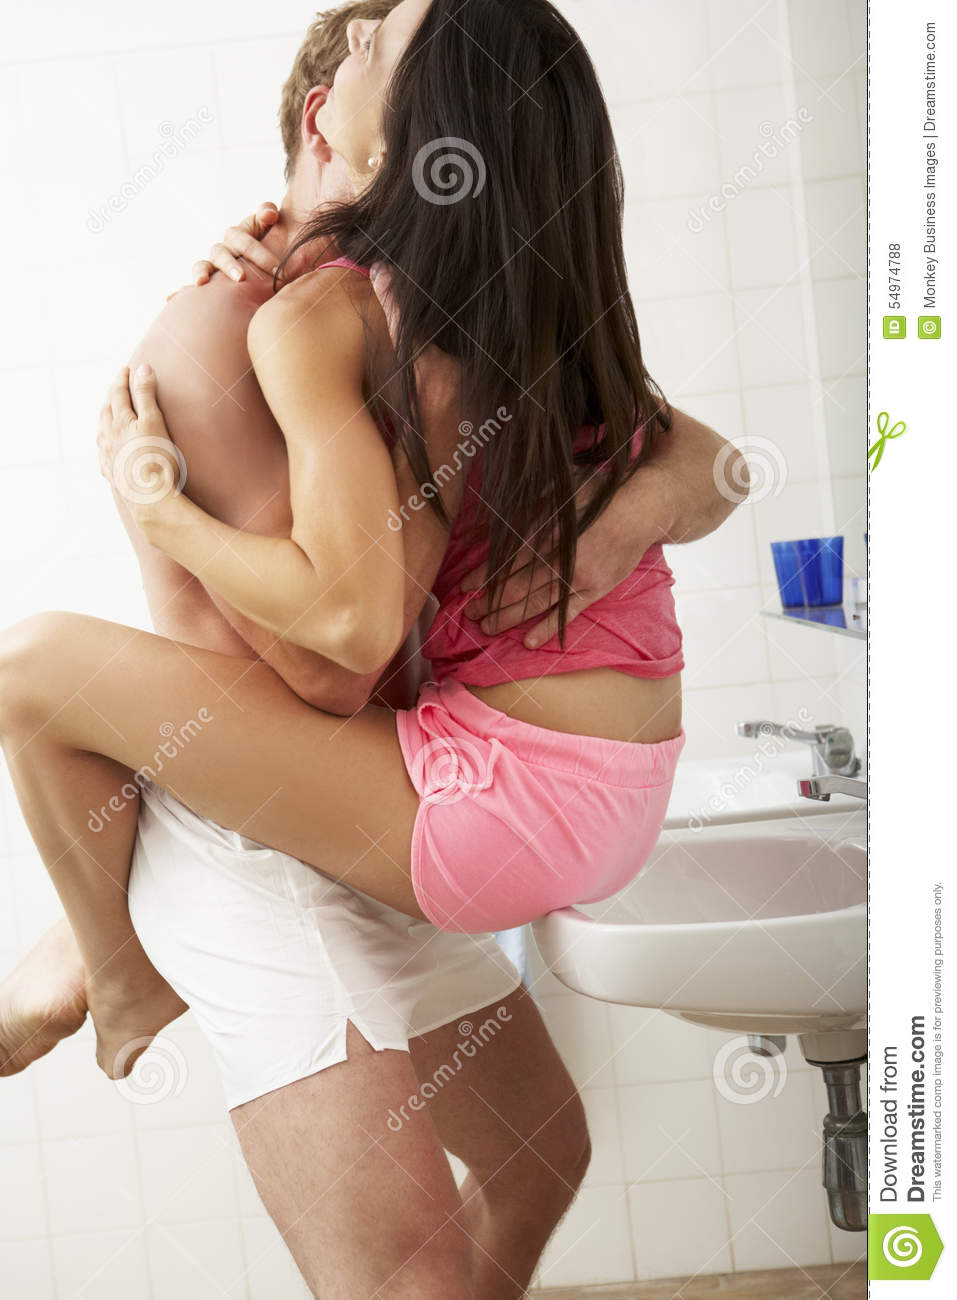 Romantic Couple In Bathroom